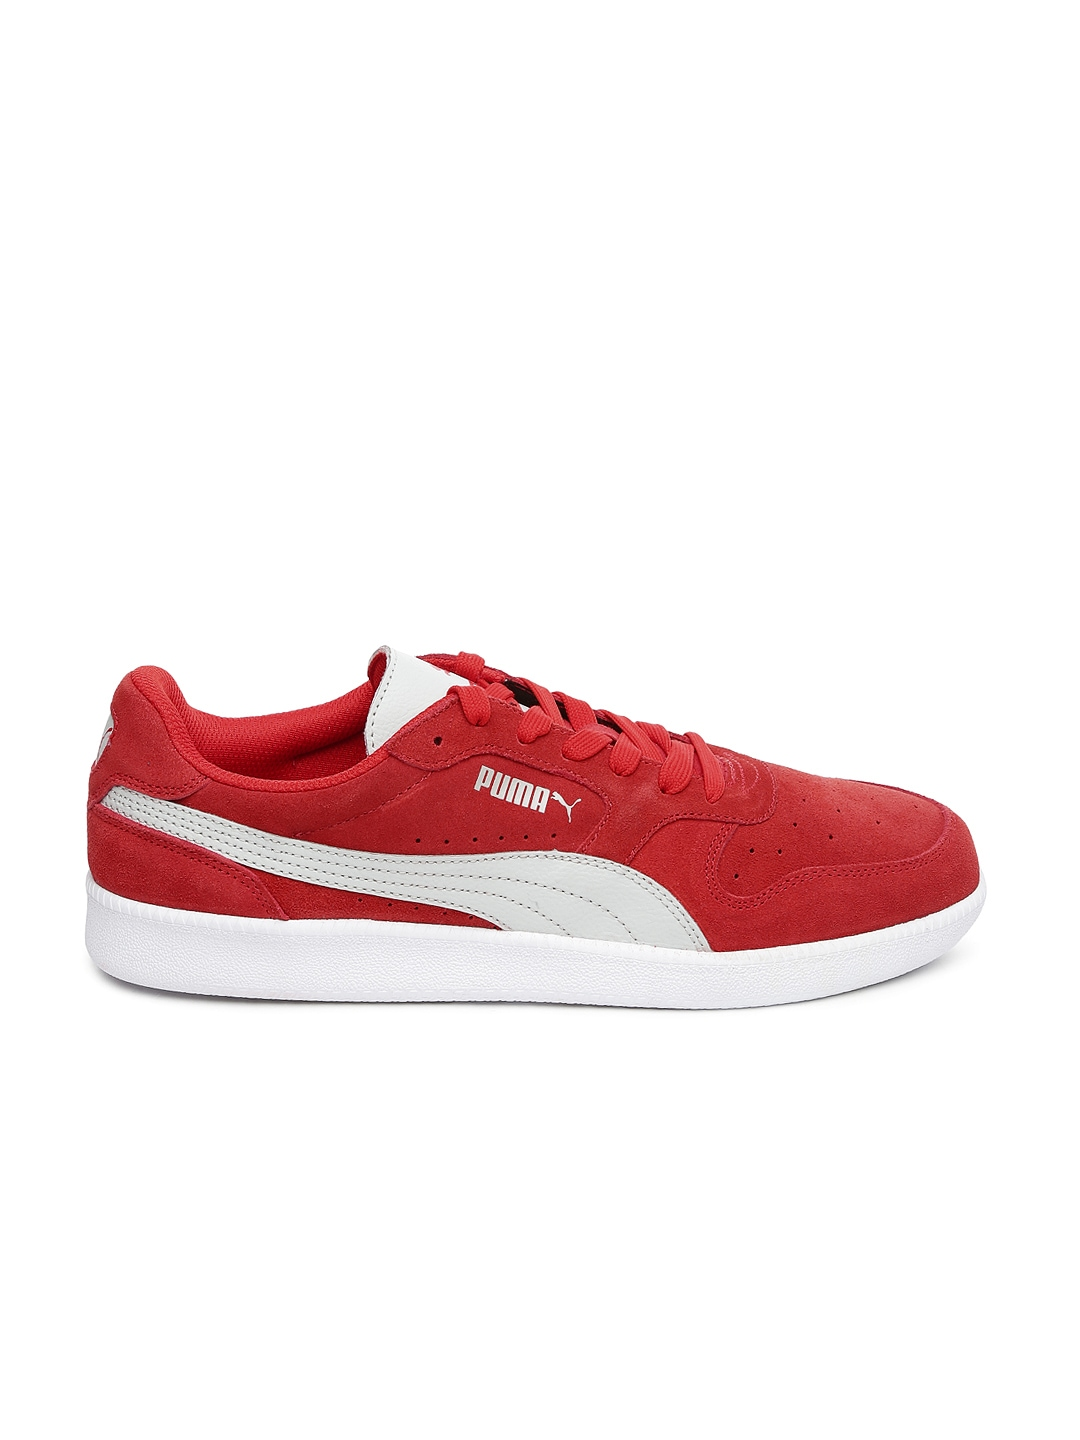 myntra puma men red icra casual shoes 740167 buy myntra